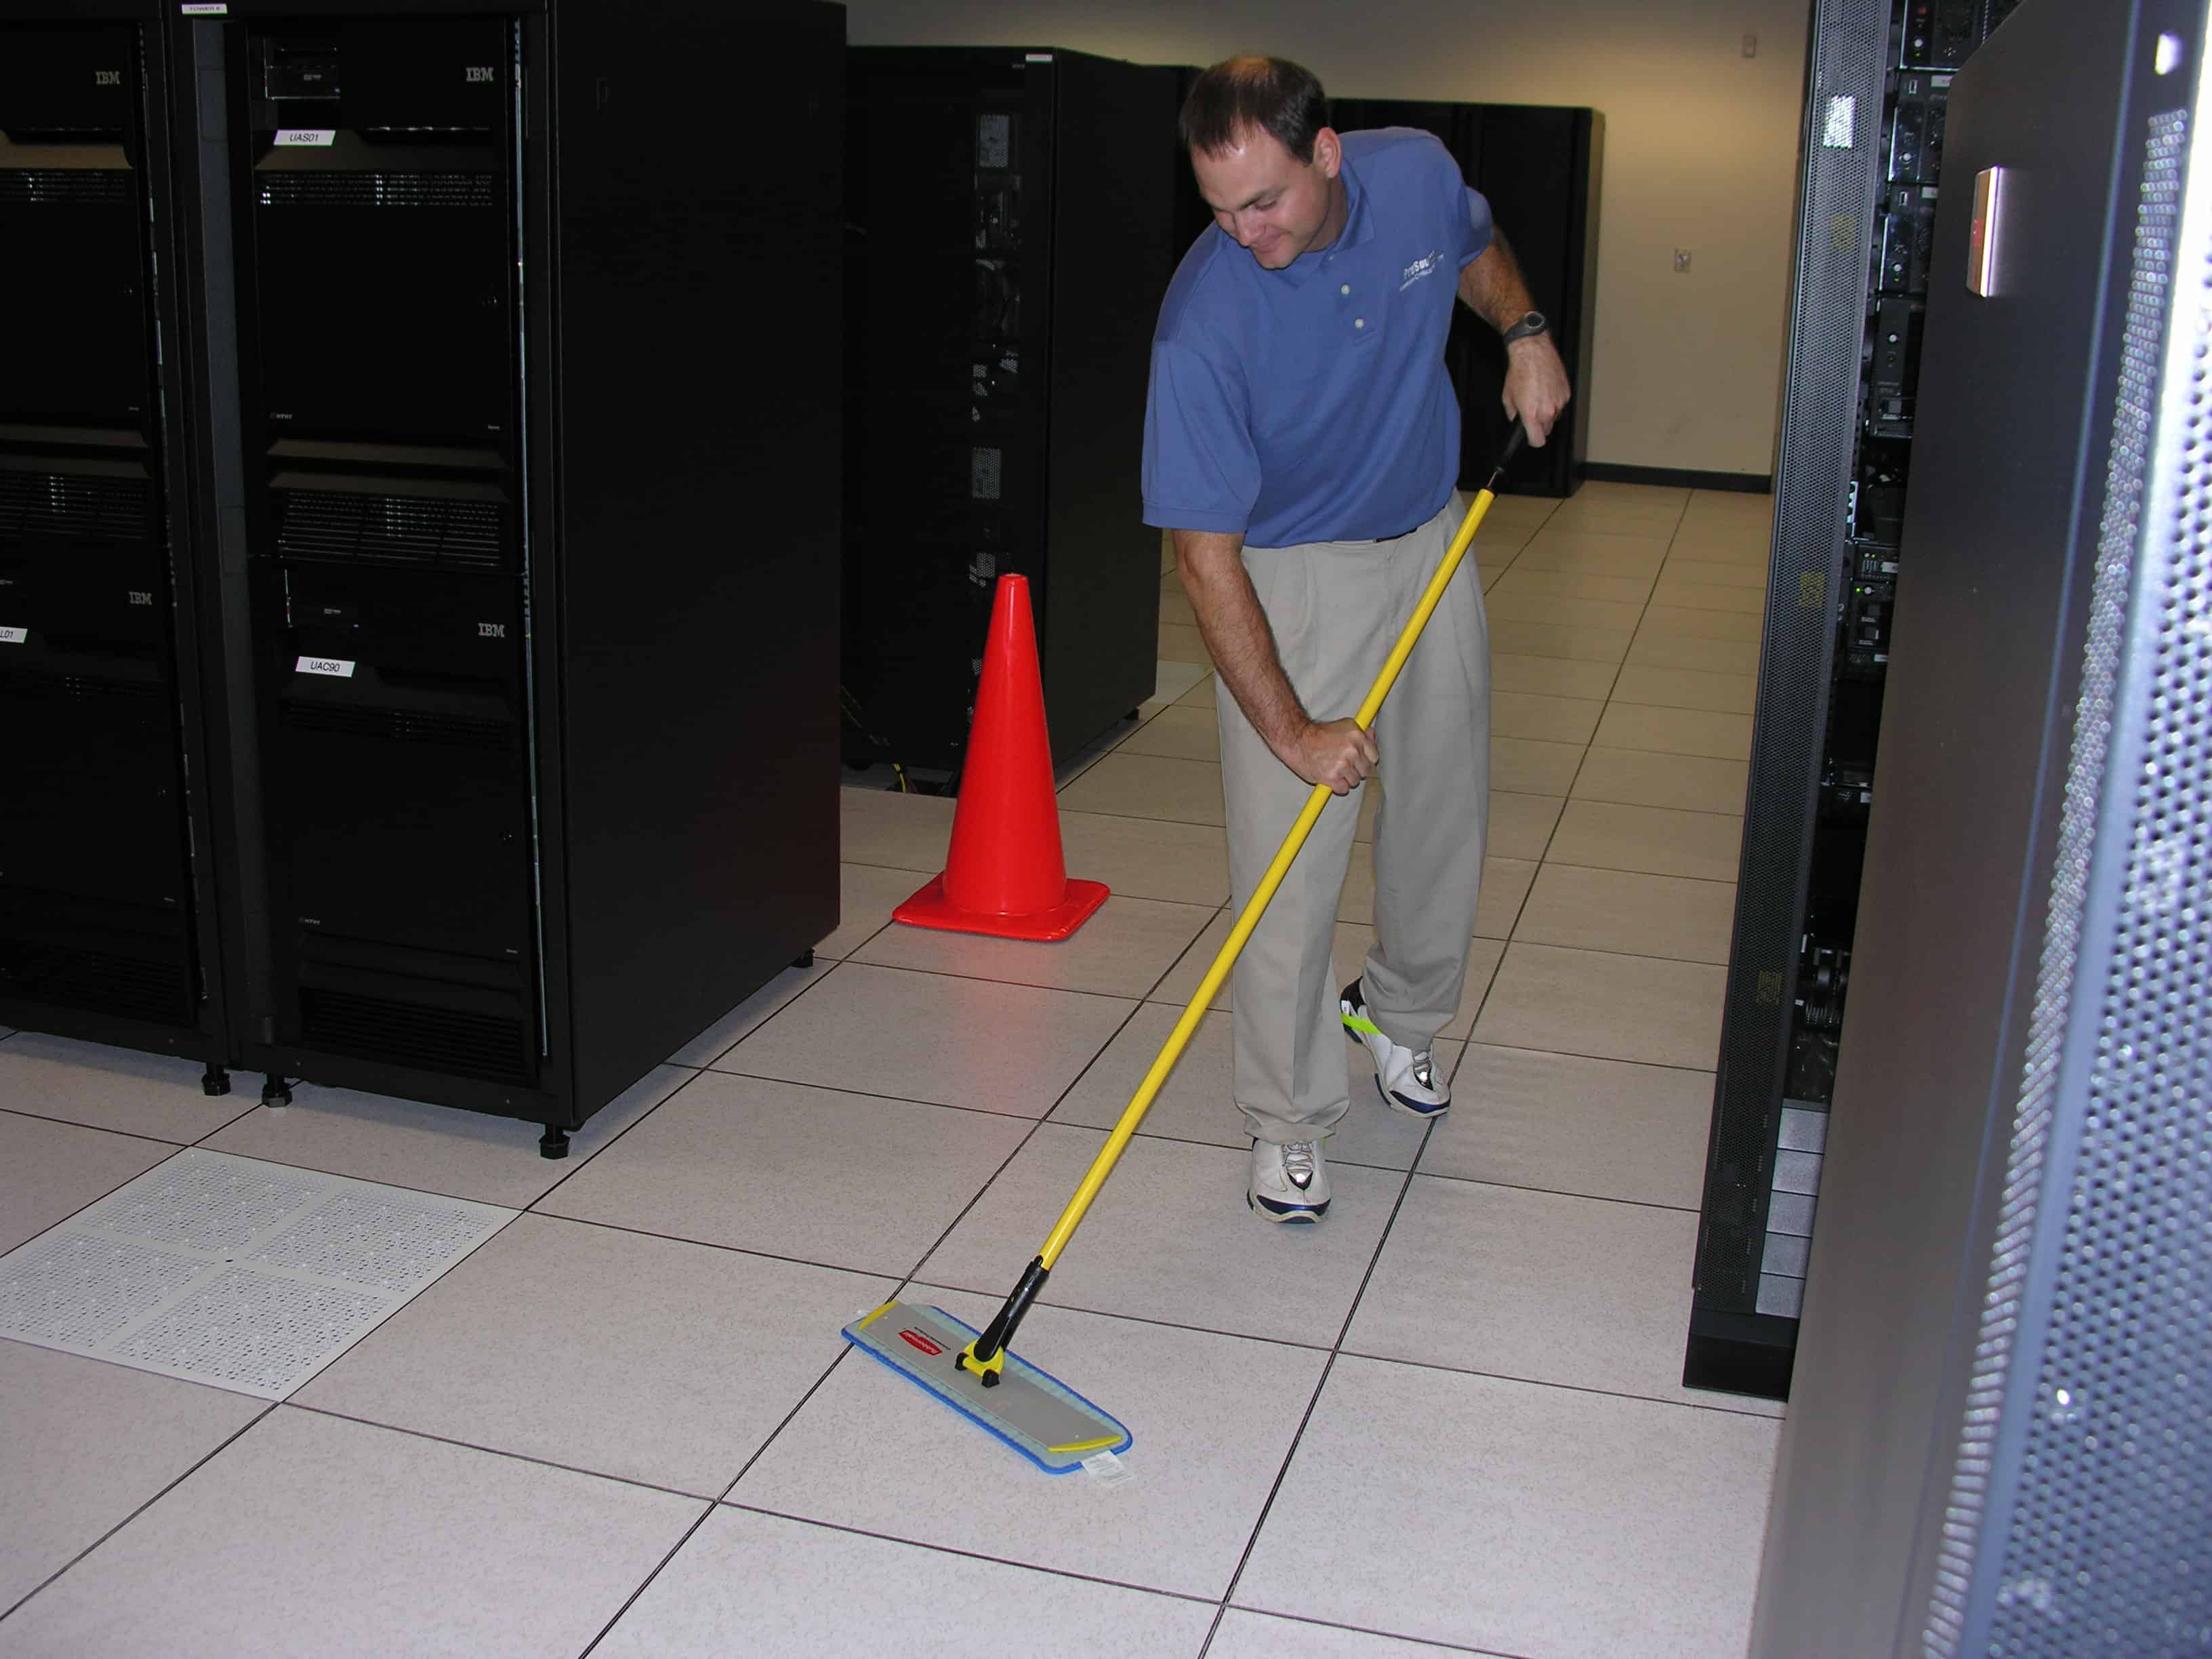 National Data Center Cleaning Provider Prosource